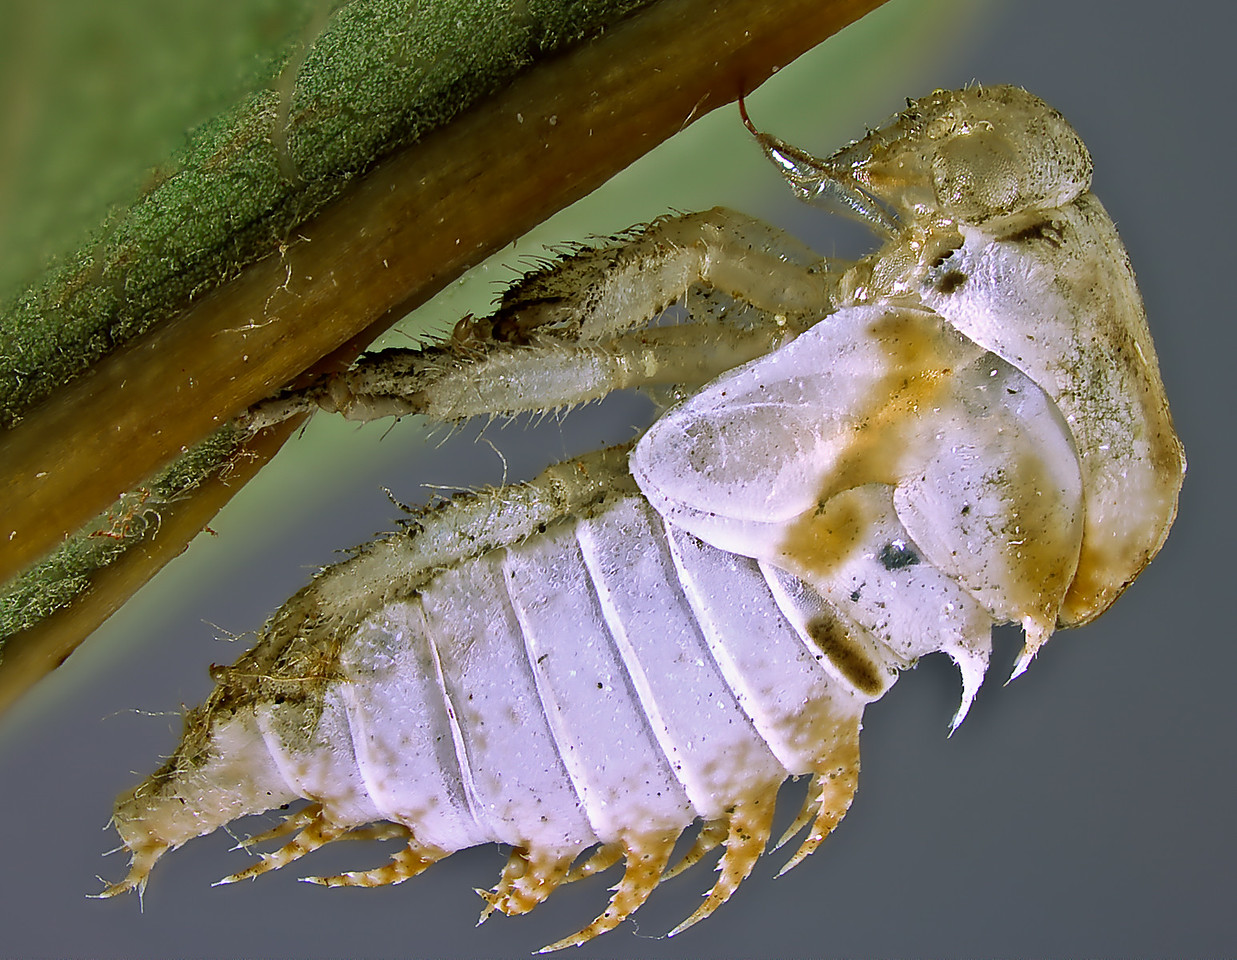 Cast skin or exuvia of a leafhopper (Hemiptera: Cicadellidae) with mouthparts embedded in plant's main vein to anchor the old skin and allow the insect to free itself more easily